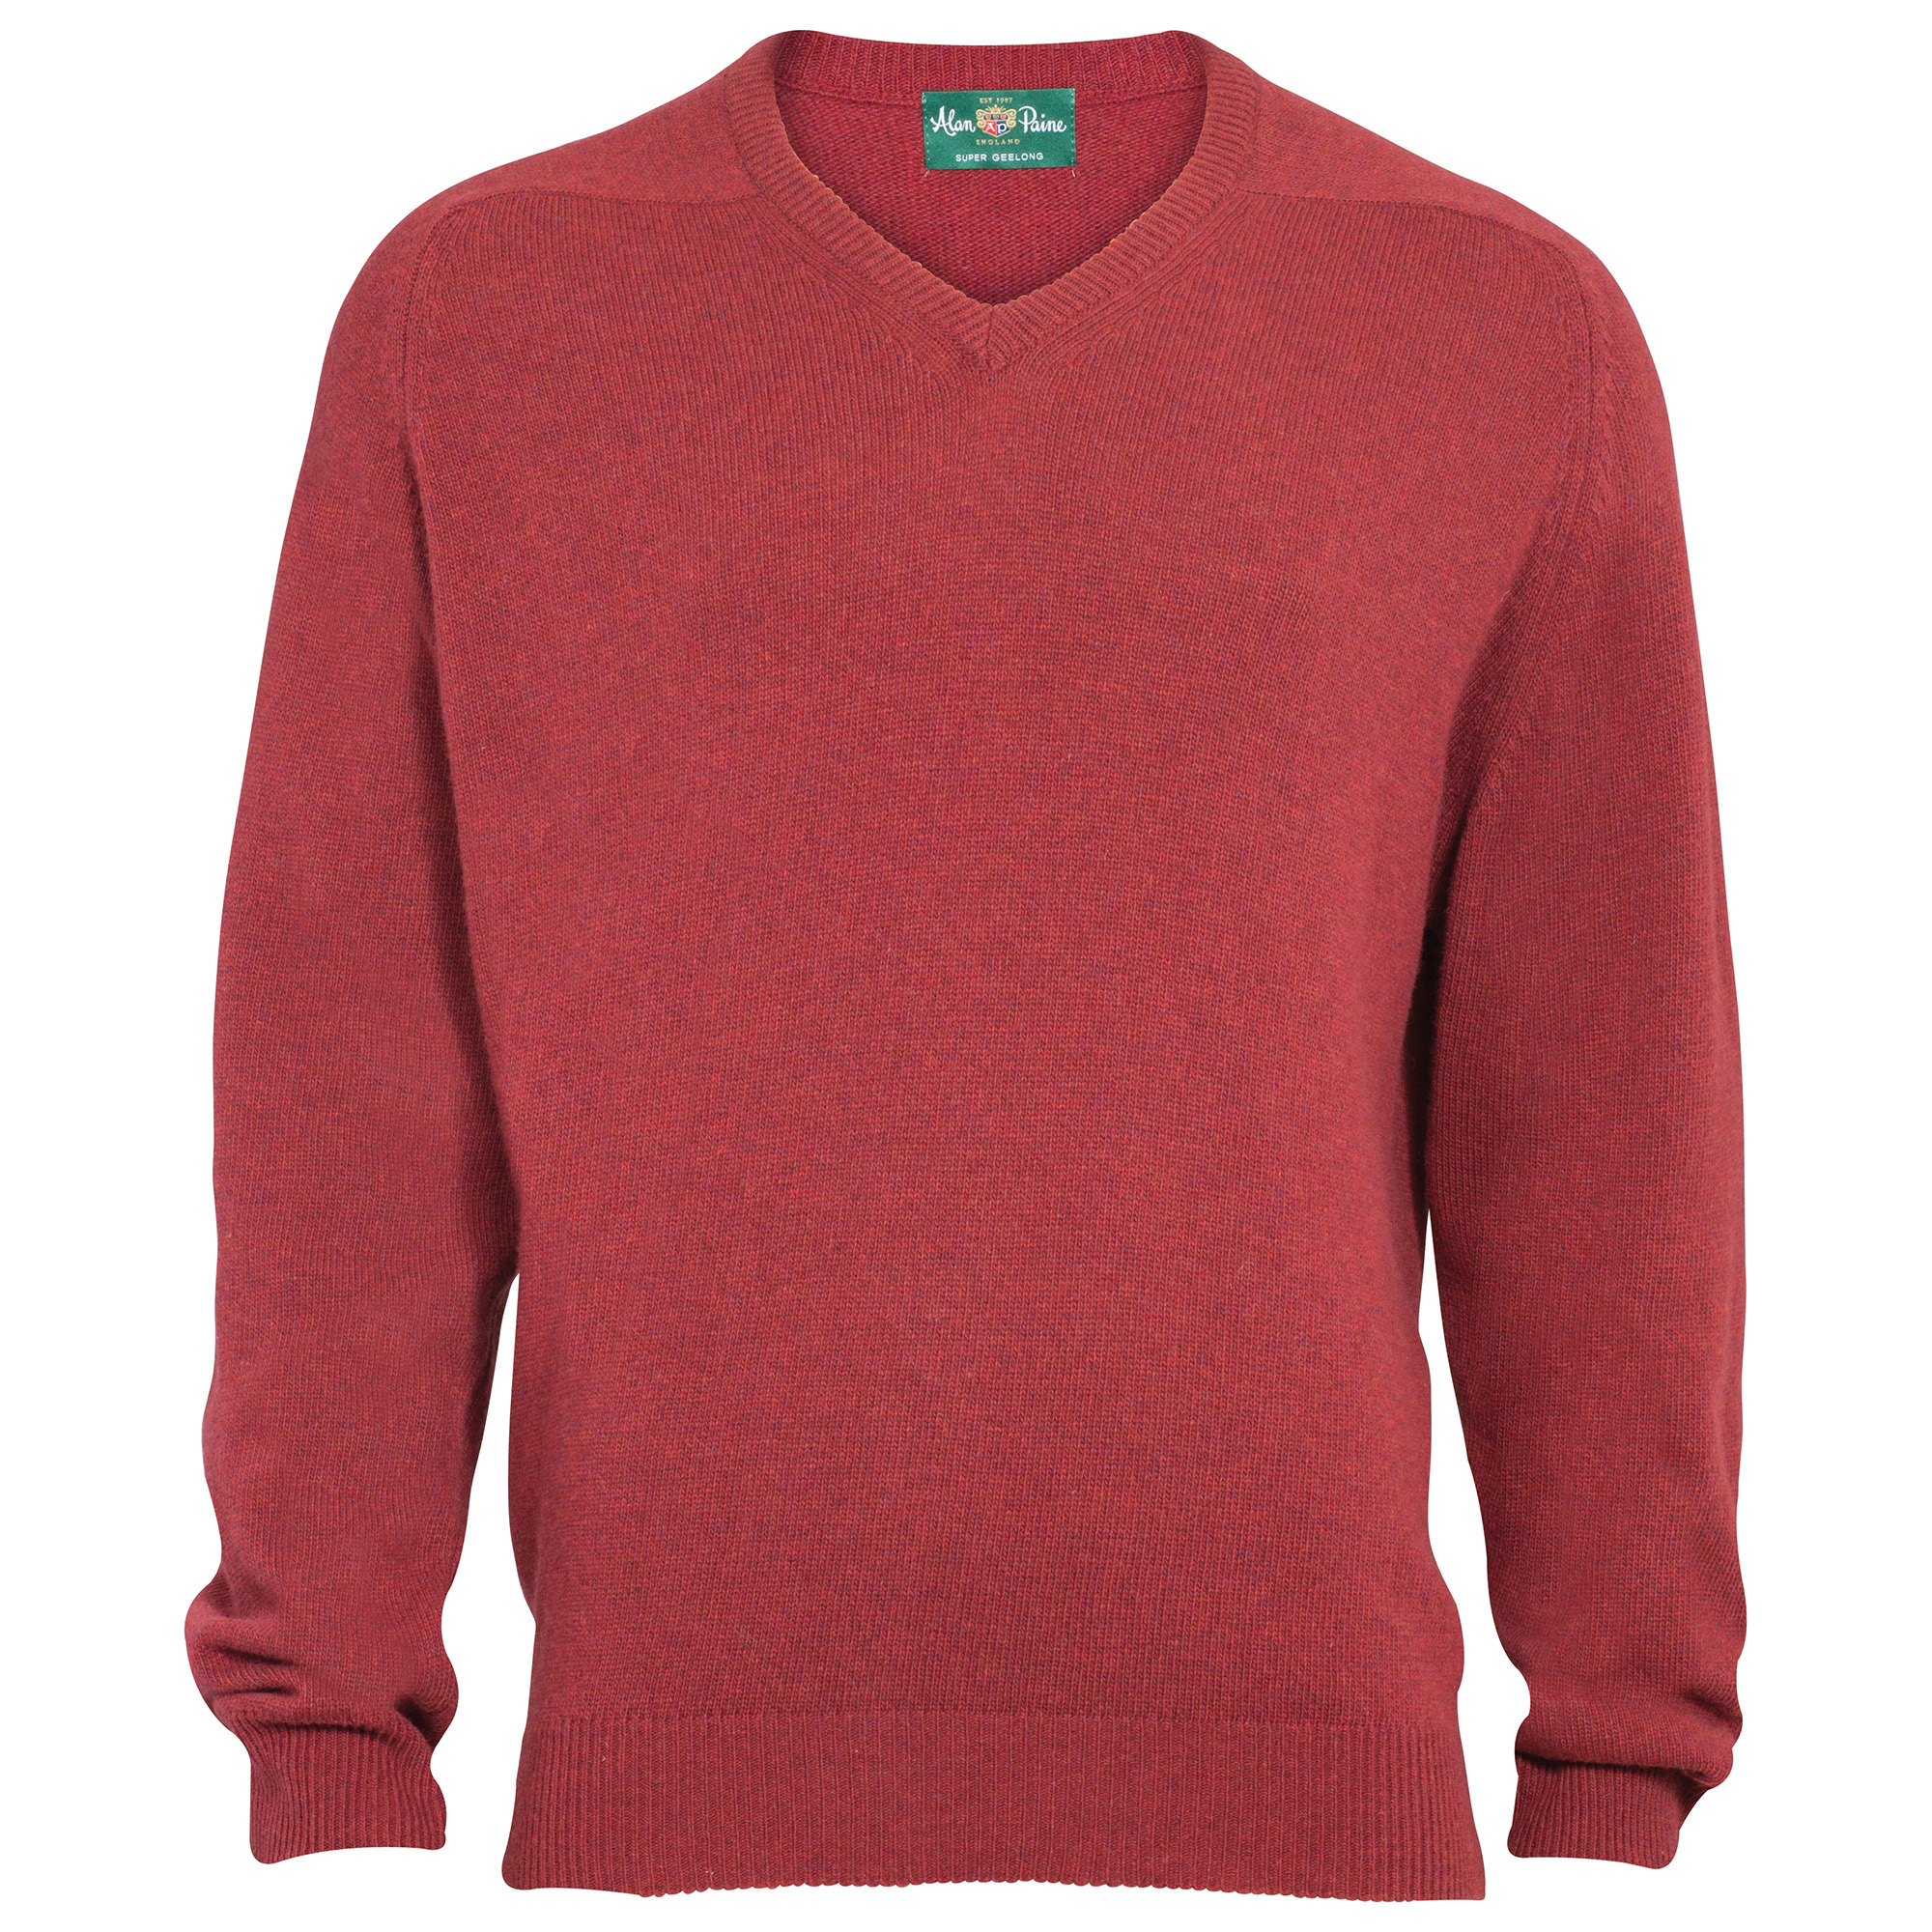 Lambswool Pullover in Jeansblau von Alan Paine